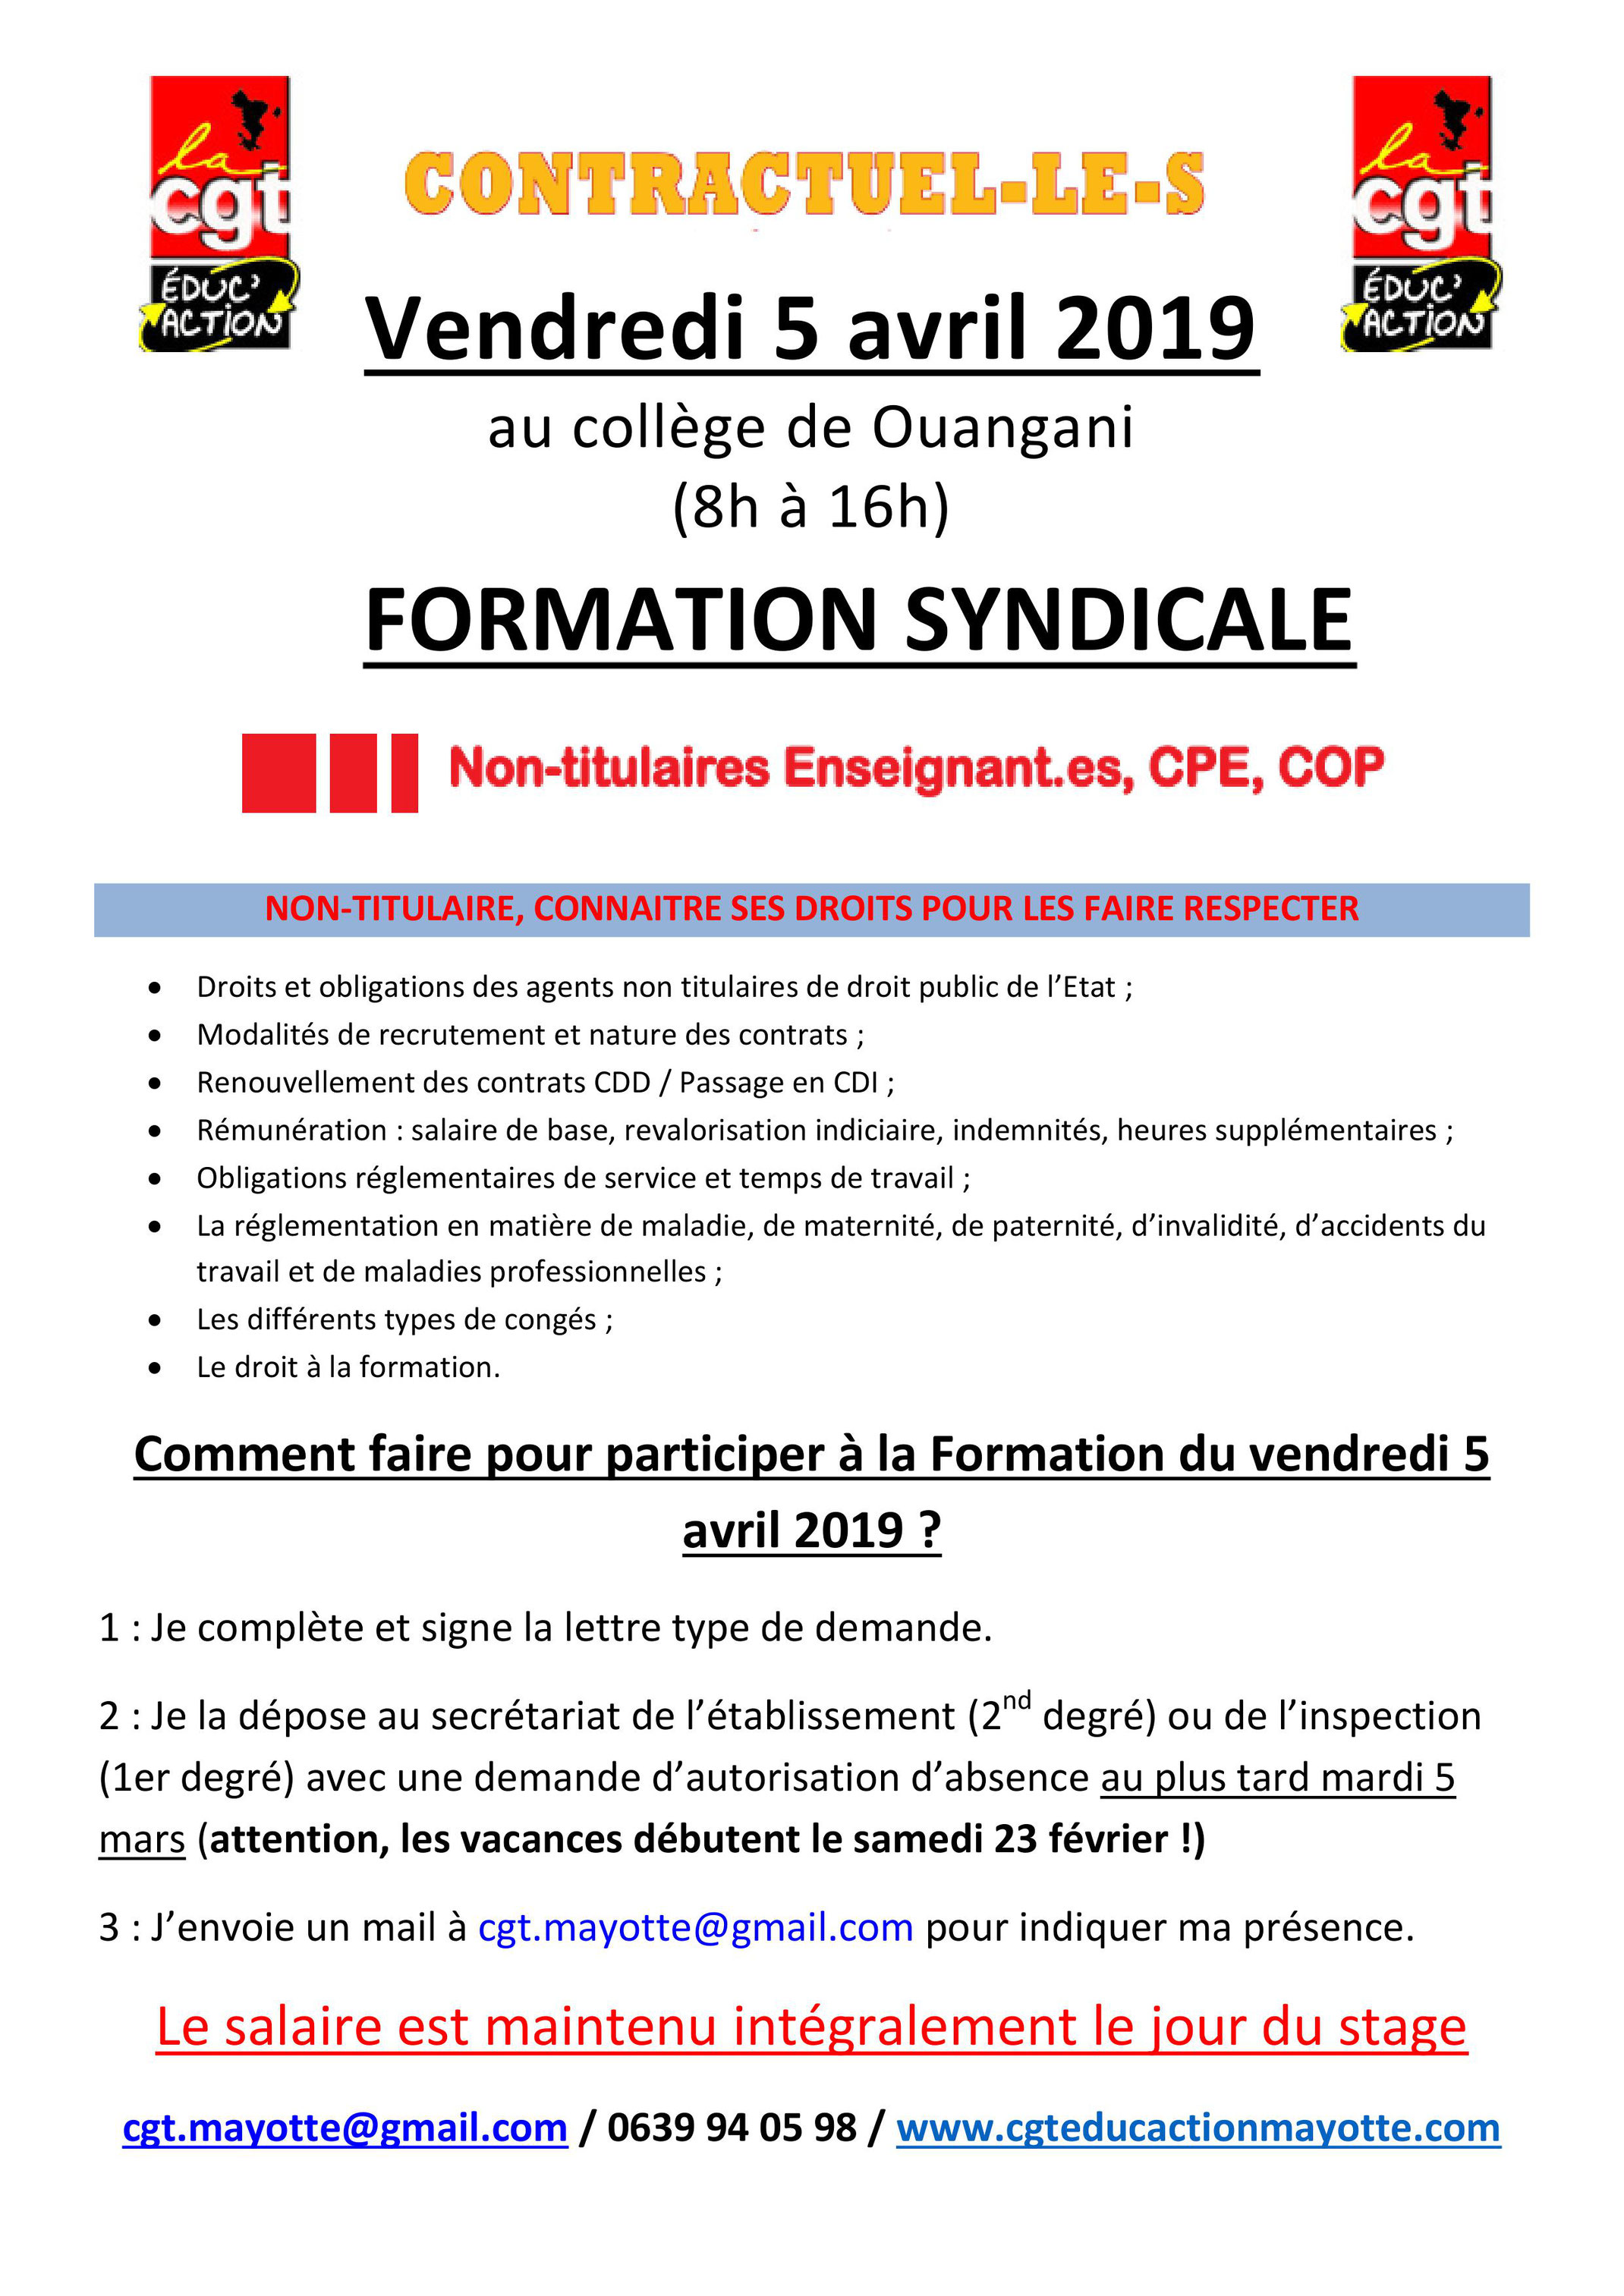 Info Contractuels Cgt Educ Action Mayotte